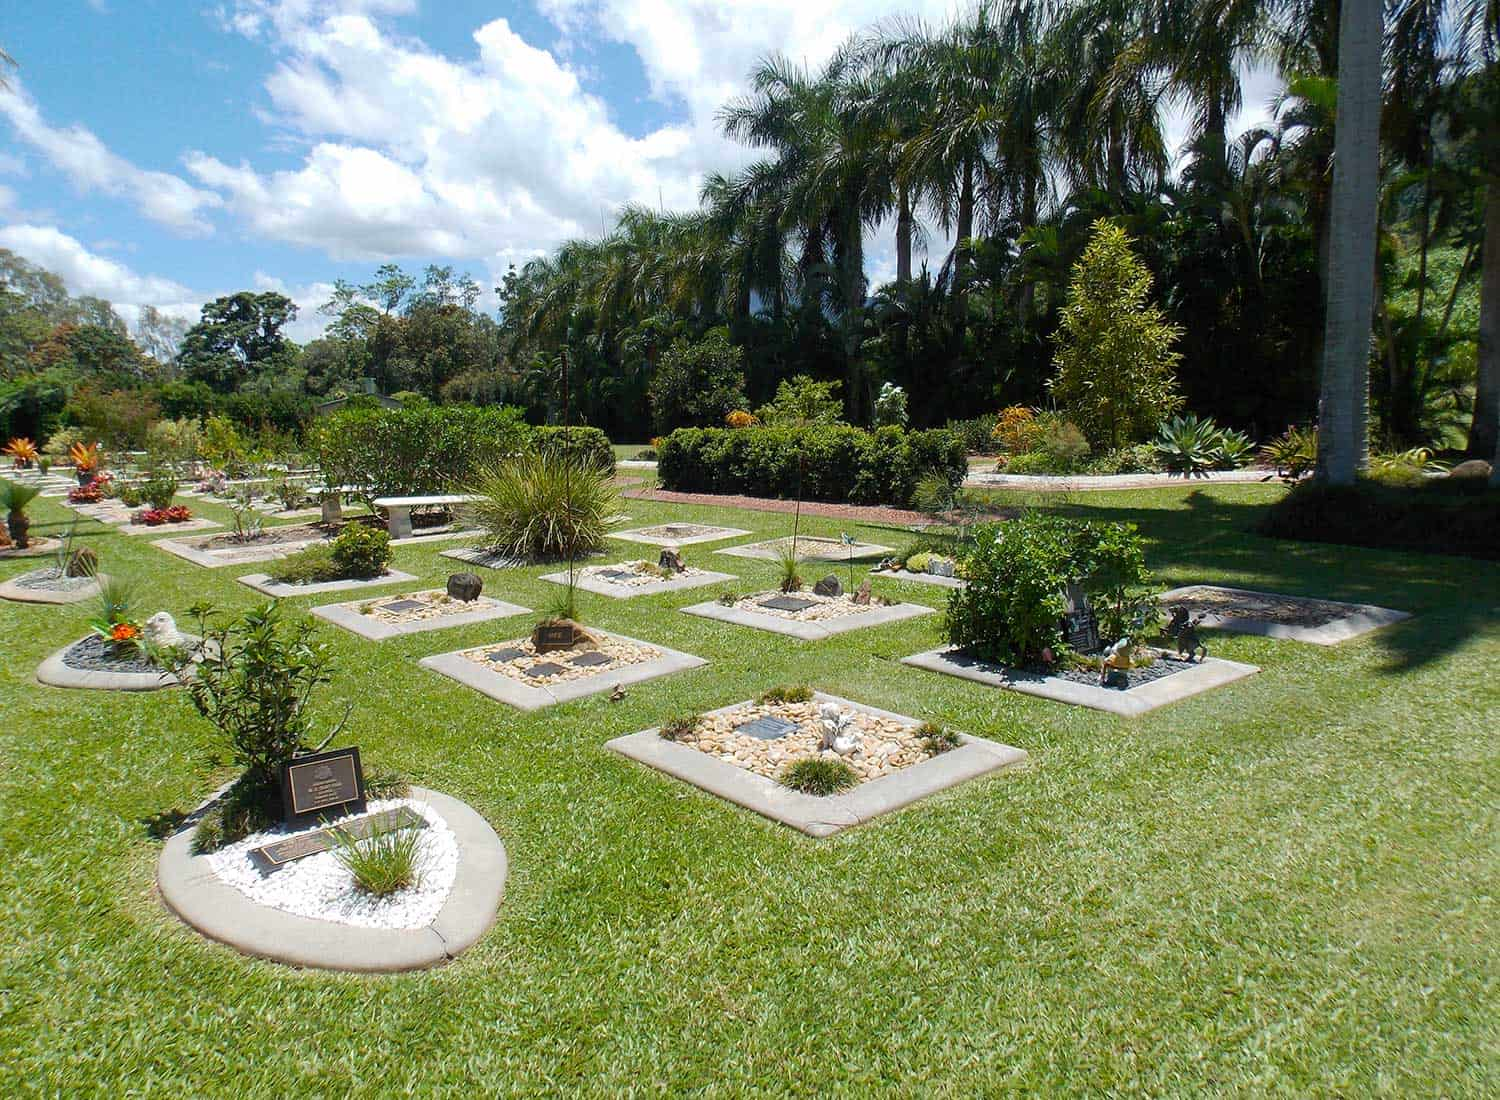 Family gardens at Cairns Crematorium Funeral Home & Memorial Gardens.